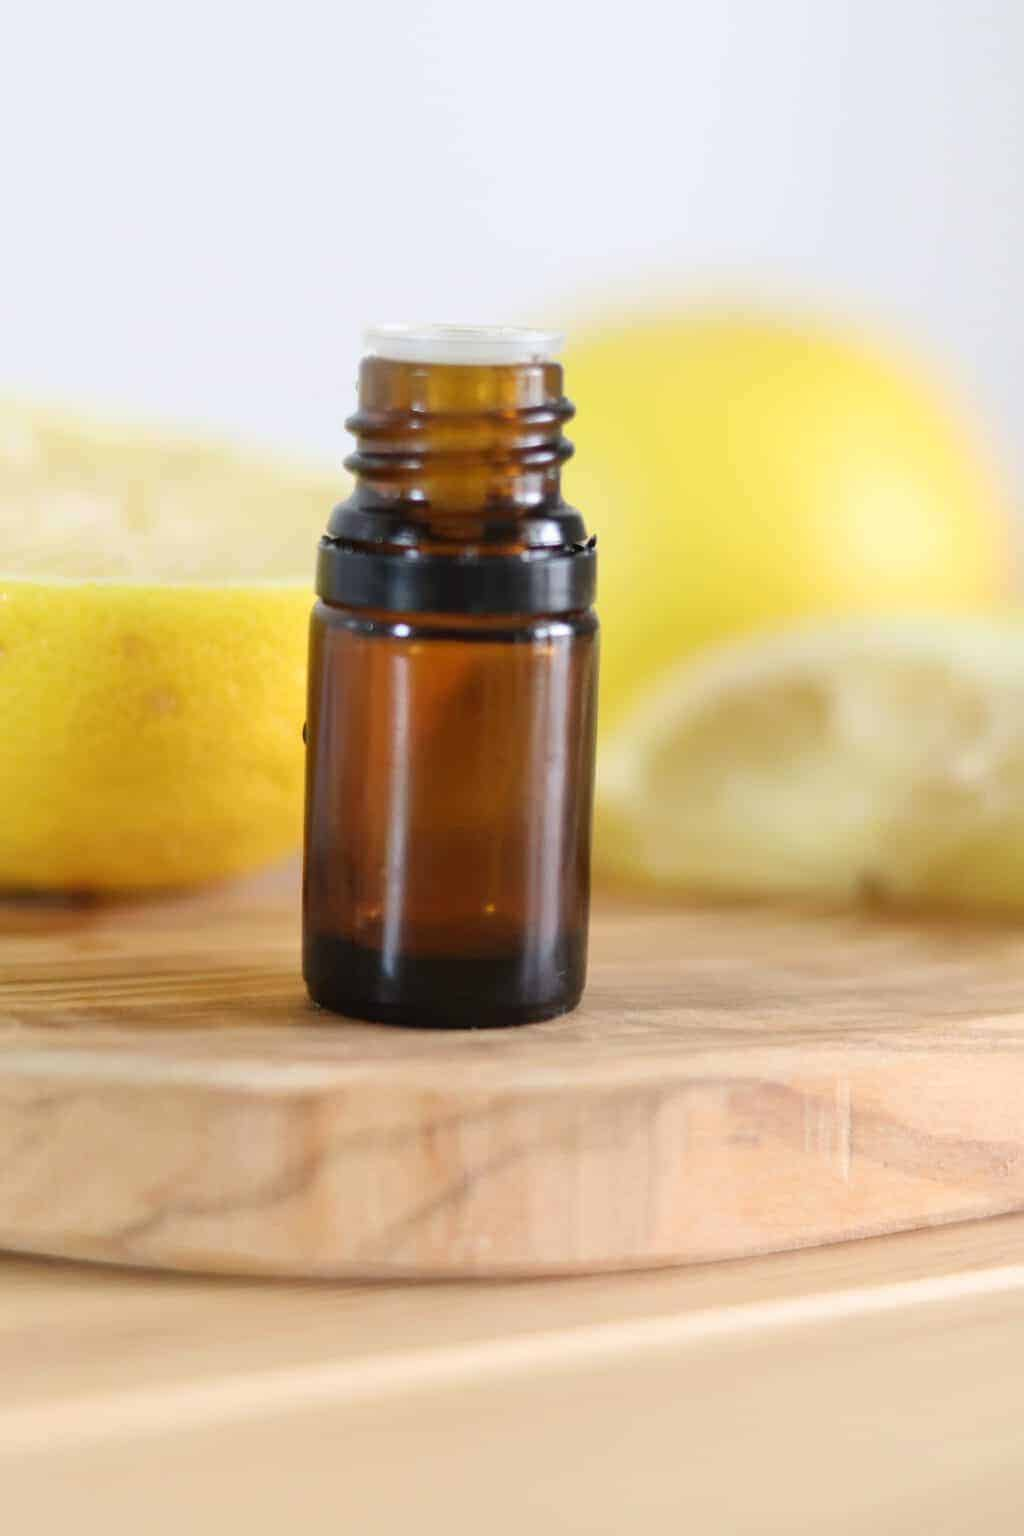 Lemon essential oil can be used aromatically, internally, and topically. Lemon oil should be diluted in fractionated coconut oil or another carrier oil of choice.